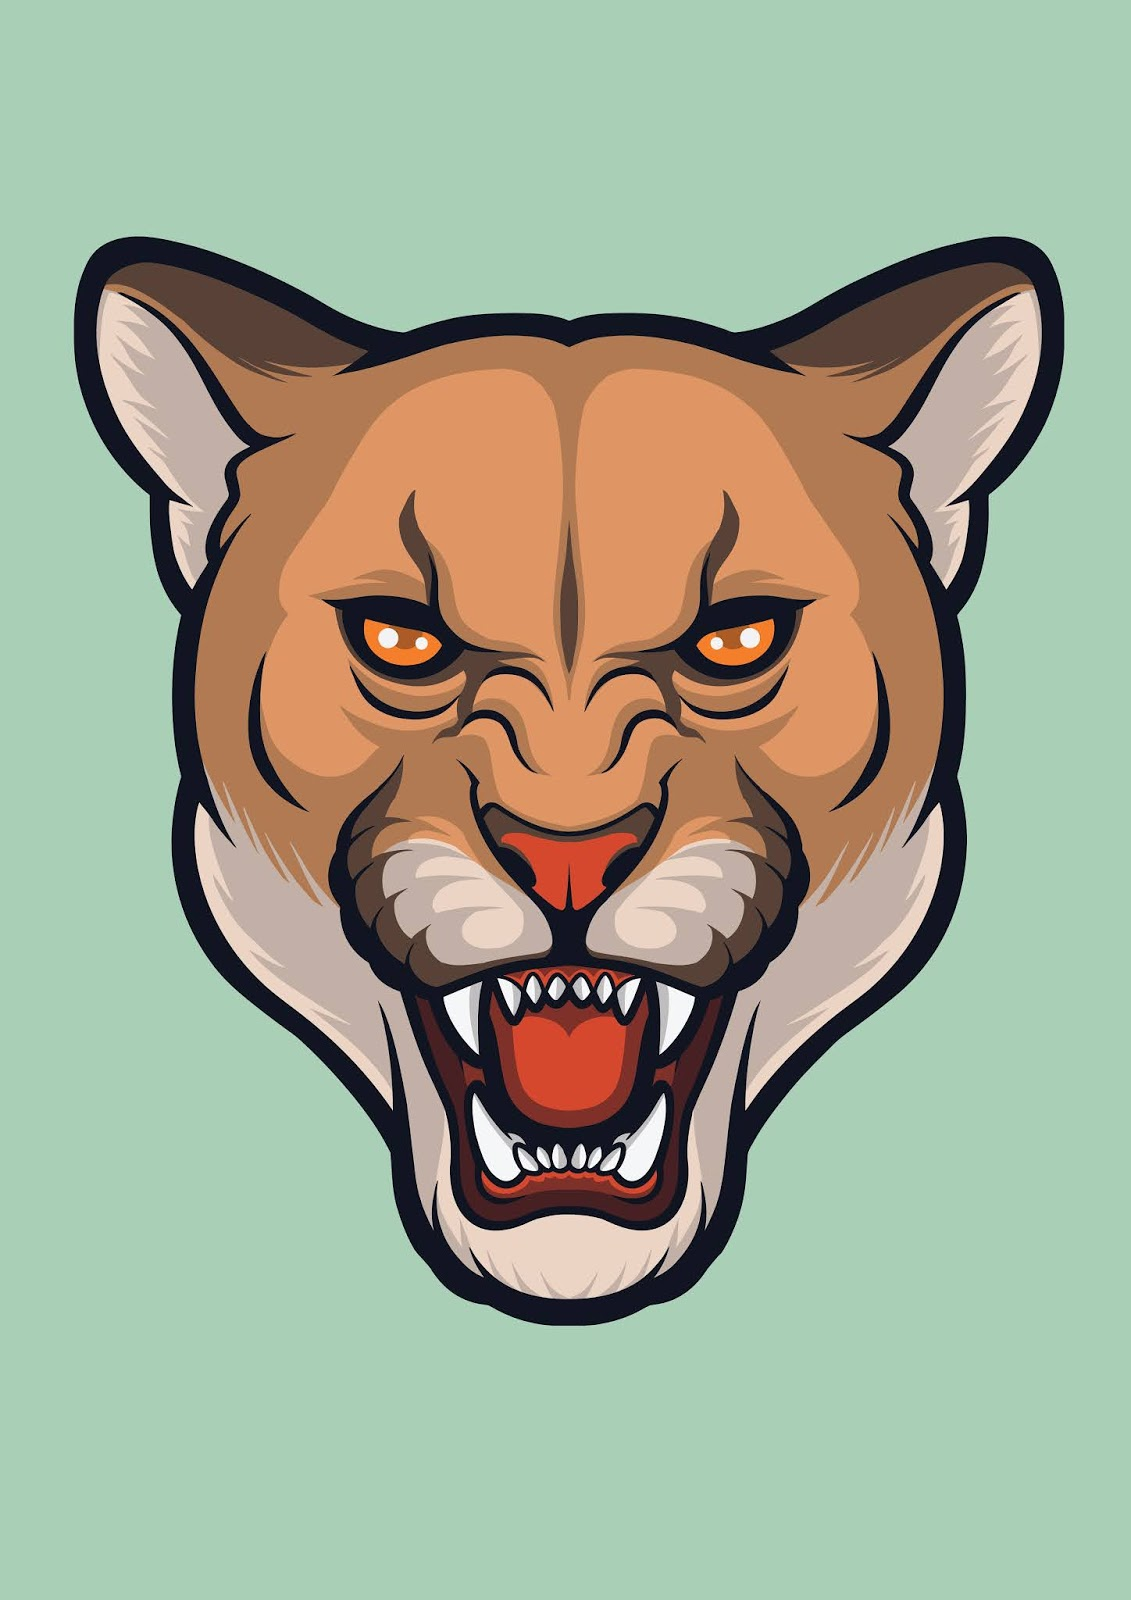 Cougar Angry Face Puma Concolor Free Download Vector CDR, AI, EPS and PNG Formats